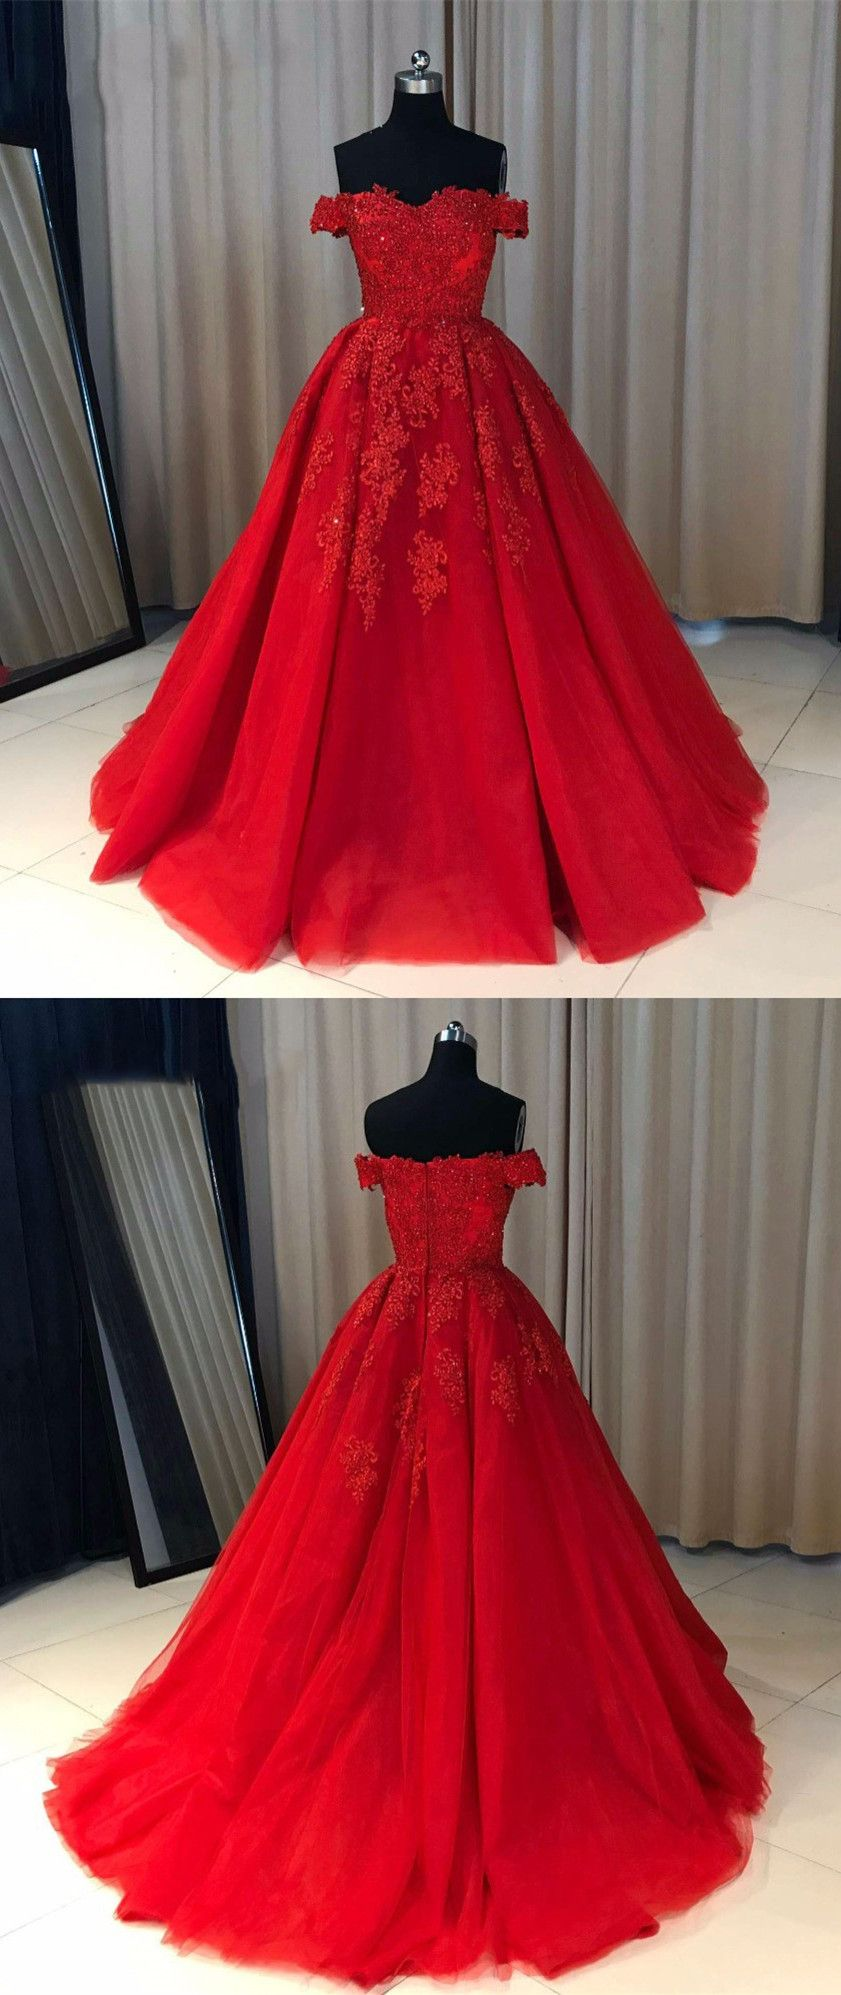 912c937976 elegant off shoulder prom party dresses with appliques, chic ball gowns for  sweet 16 prom.